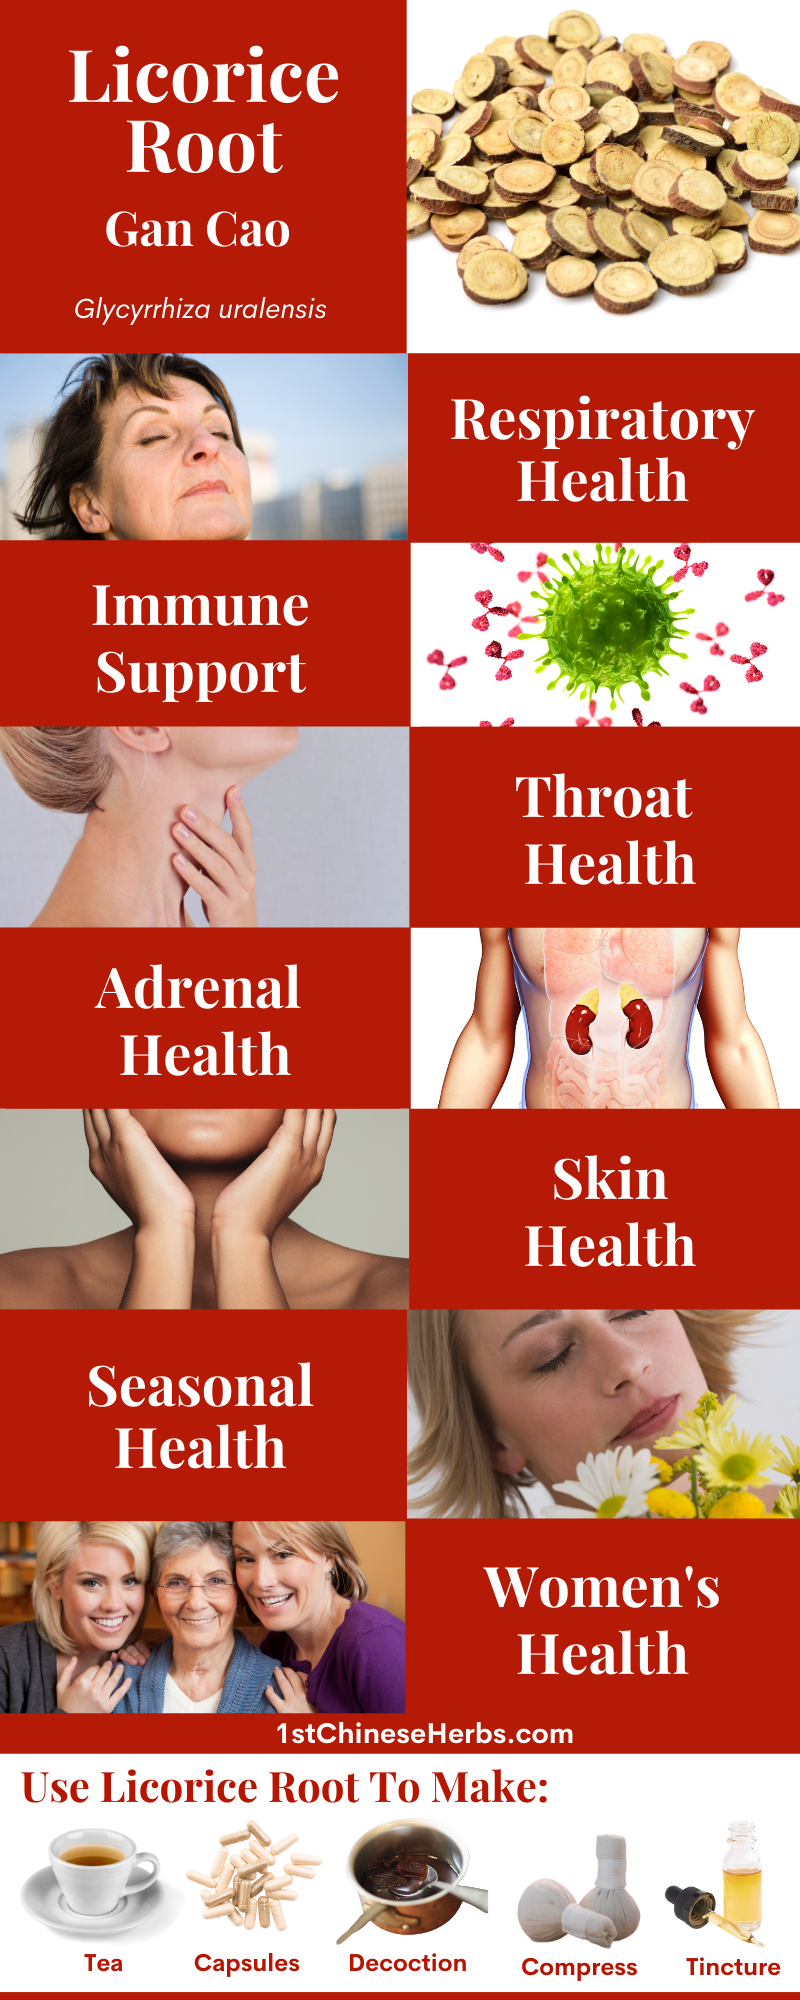 Licorice Root Benefits, sweet root benefits, Chinese licorice root benefits, liquorice root benefits, licorice root throat, licorice root skin, licorice root allergies, licorice root cough, licorice root menopause, licorice root menstruation, licorice root adrenal glands, licorice root immune support